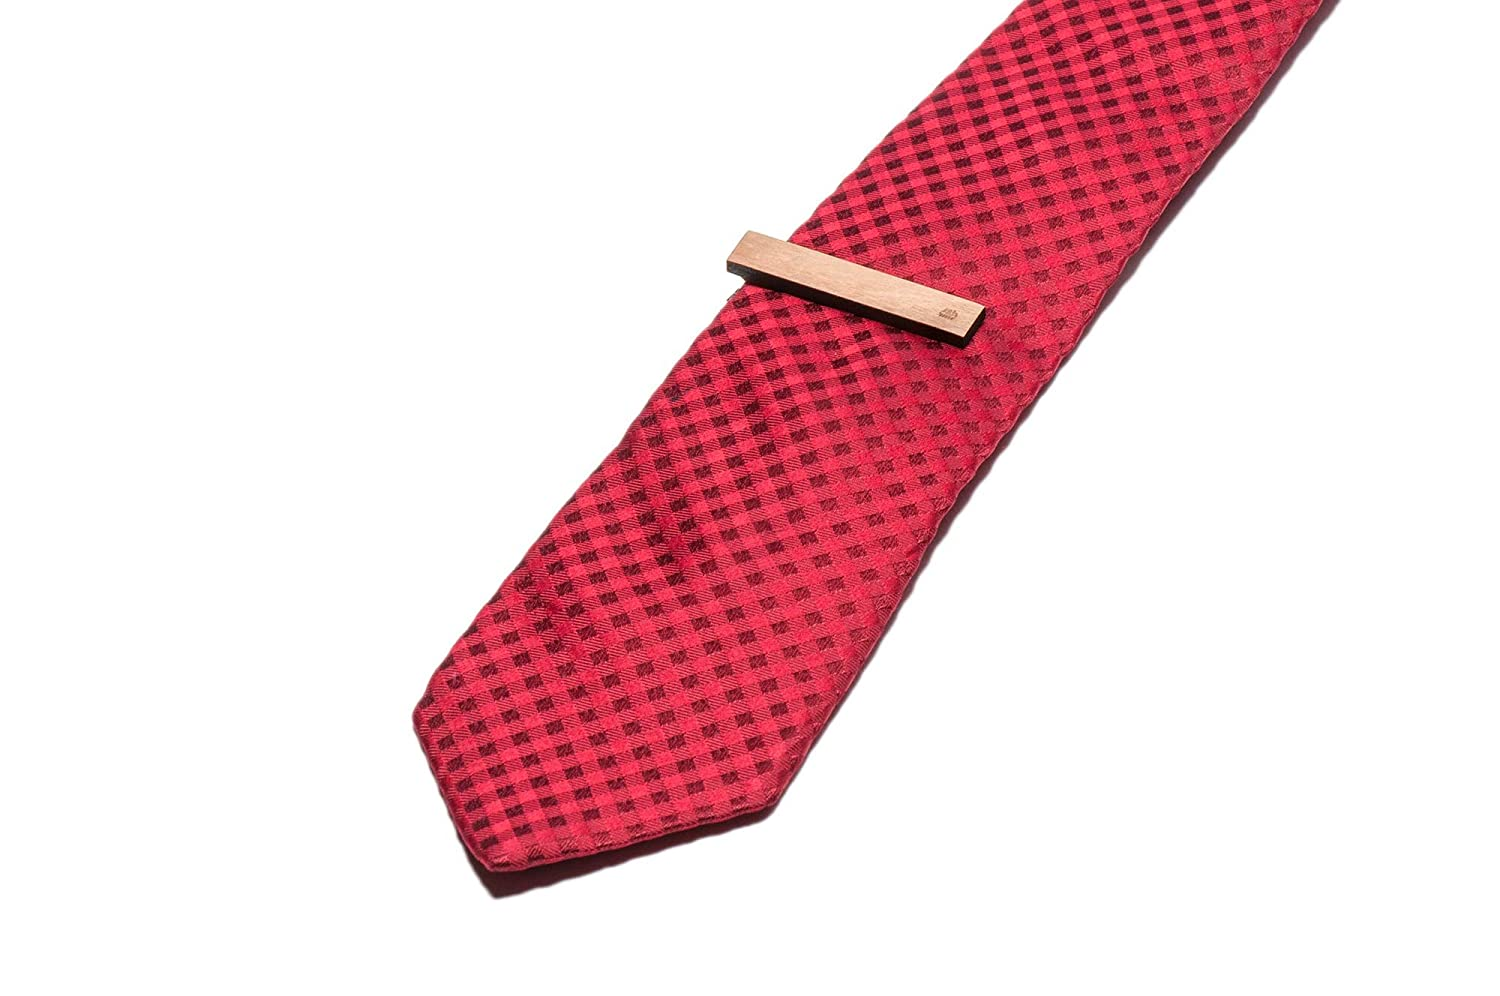 Cherry Wood Tie Bar Engraved in The USA Wooden Accessories Company Wooden Tie Clips with Laser Engraved Bobsledding Design